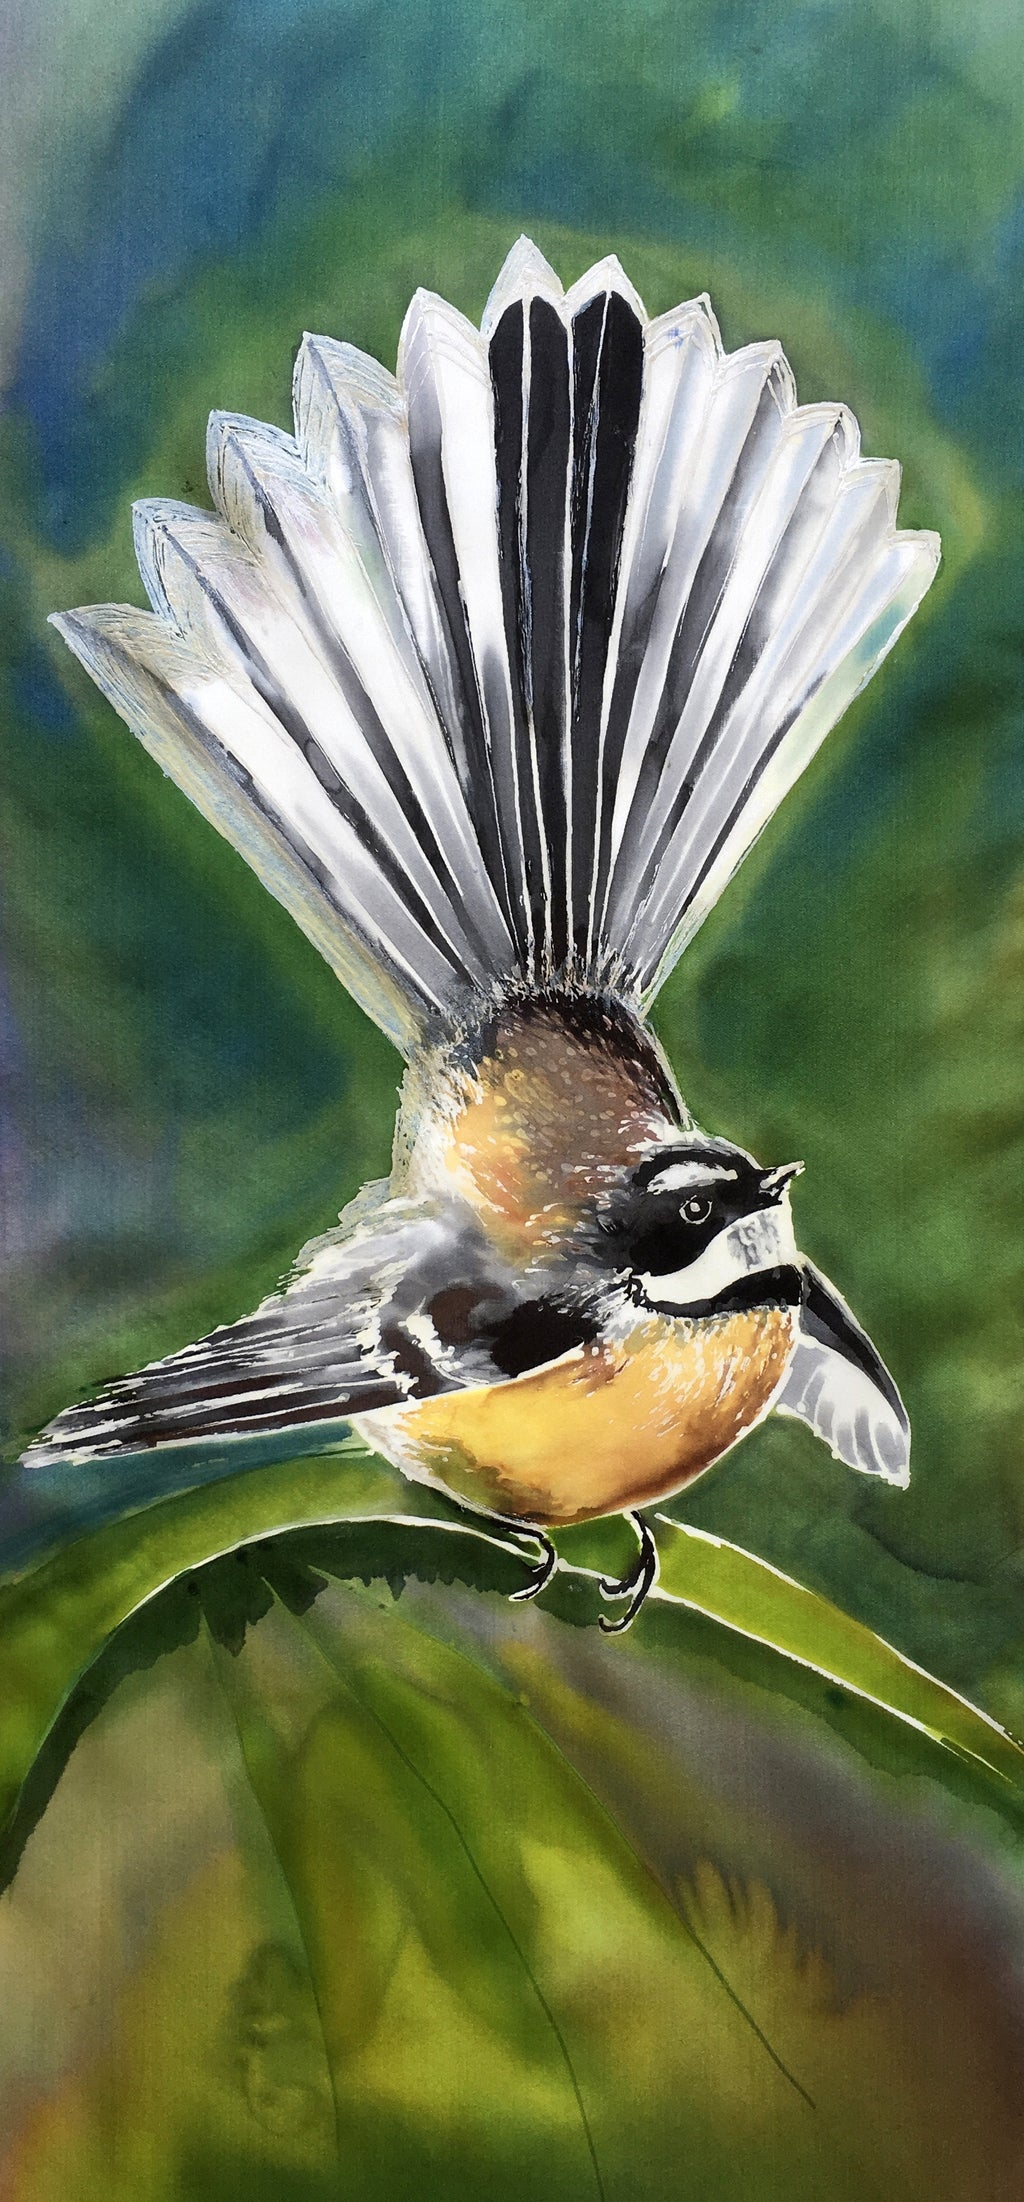 New Zealand Fantail Bird - Outdoor Garden Art Panel - Satherley Silks NZ